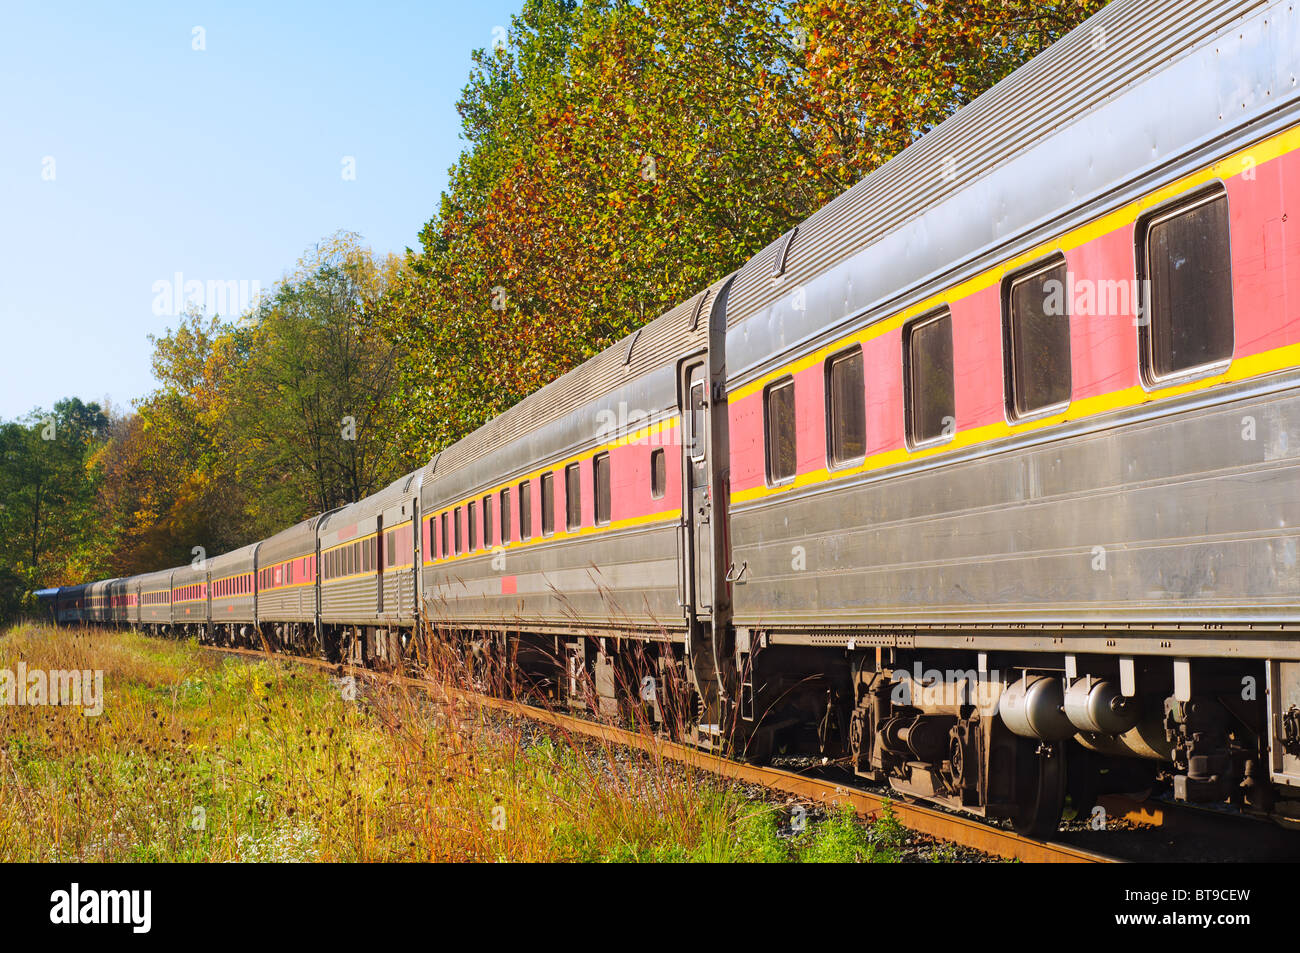 A vintage passenger excursion train in a rural setting. Stock Photo